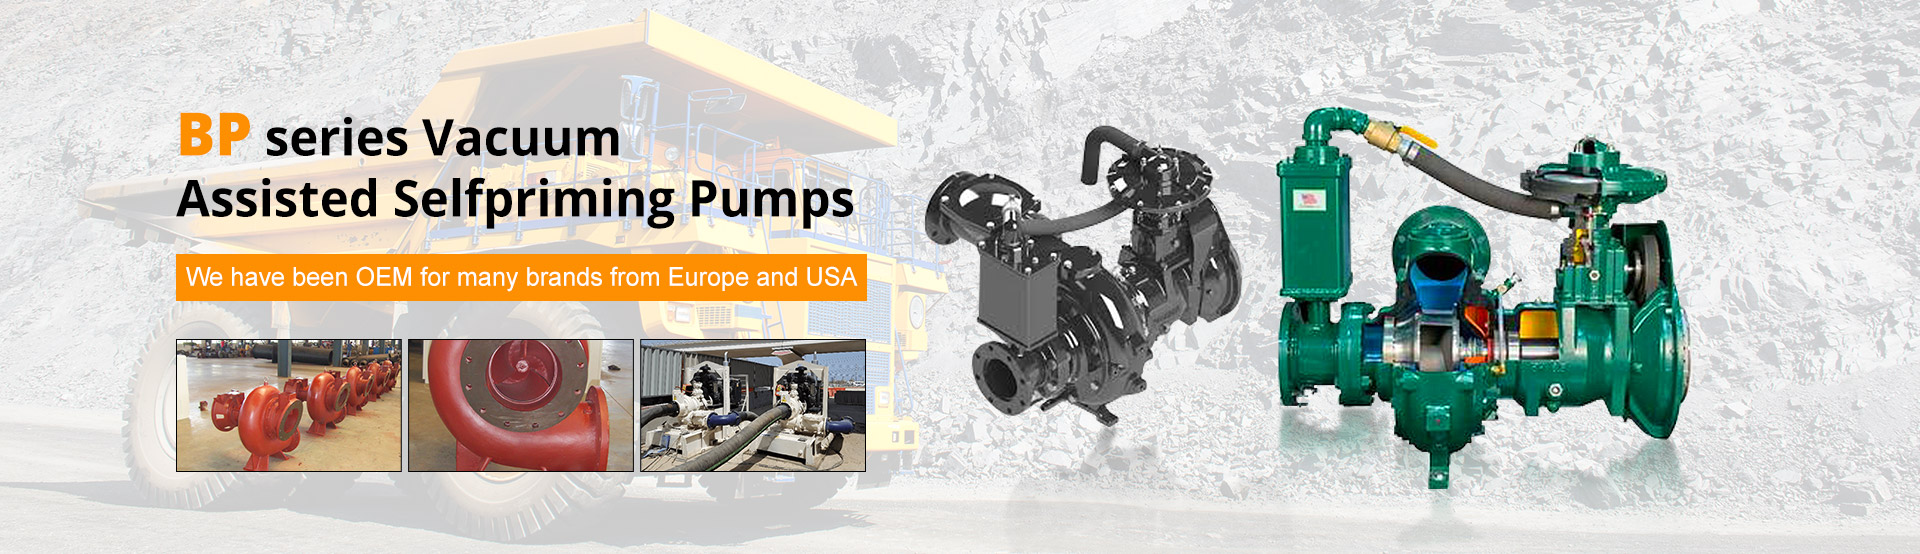 BP series Vacuum  Assisted Selfpriming Pumps